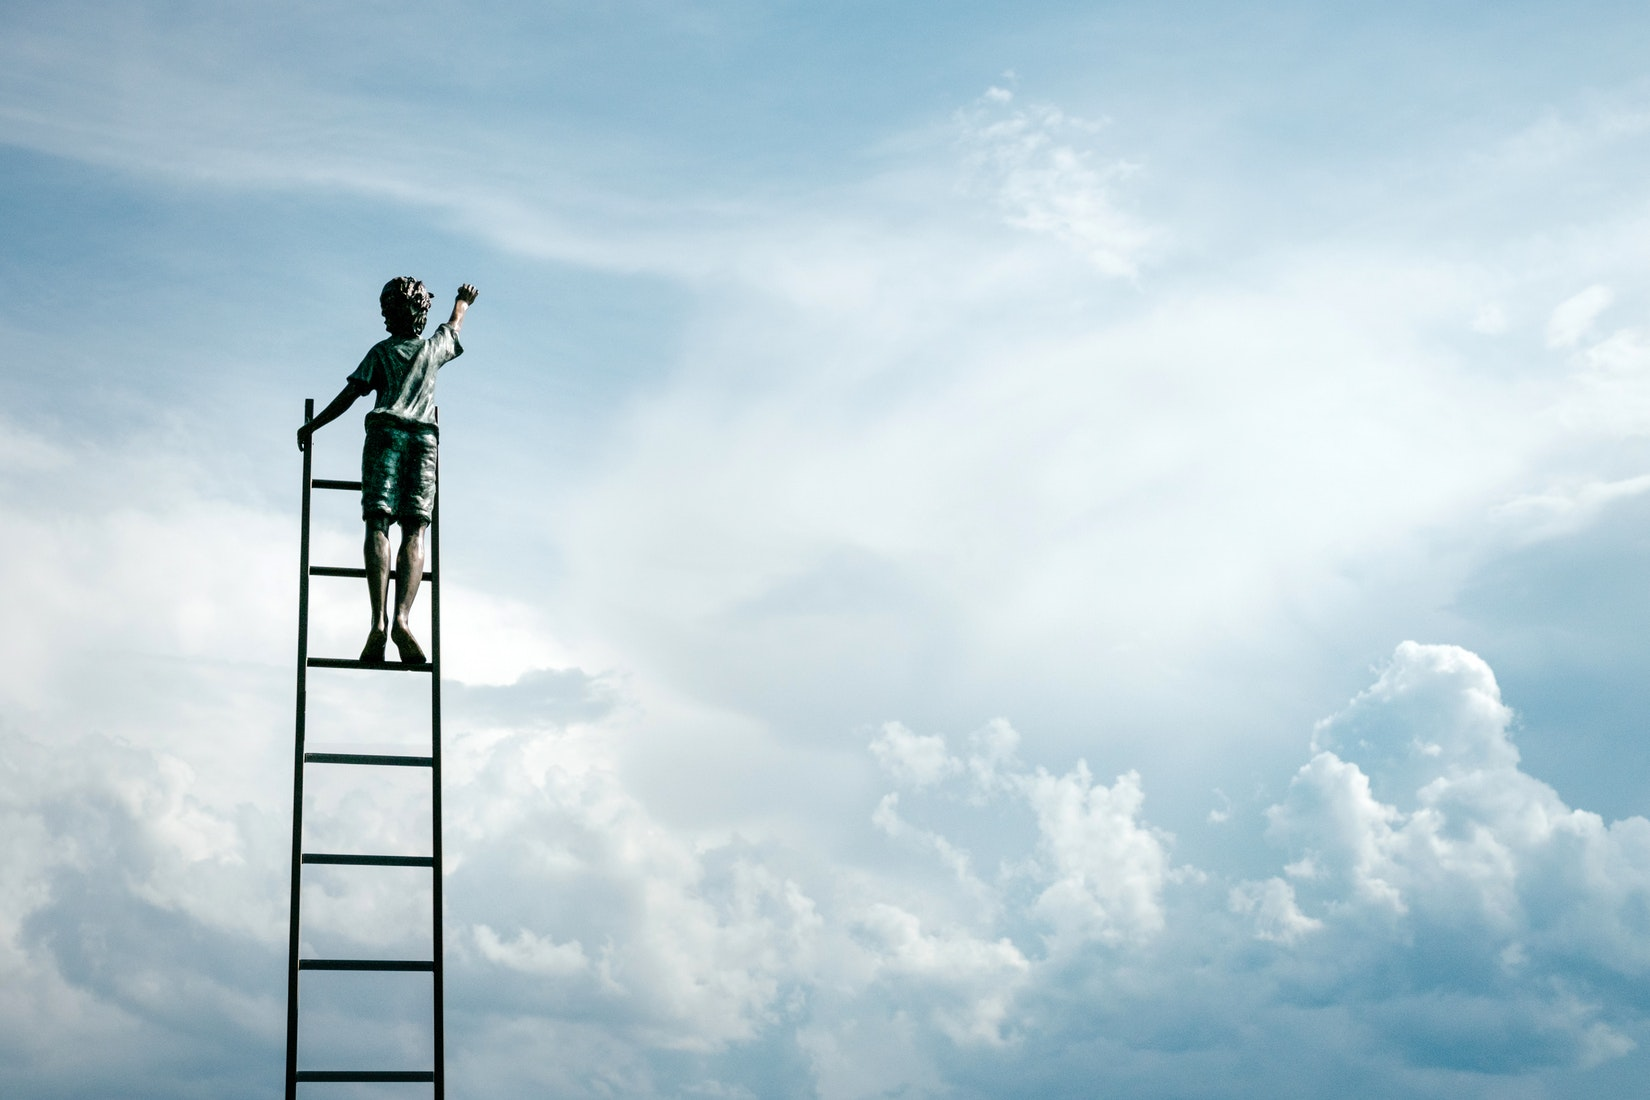 Child climbing a ladder stretching up into the sky